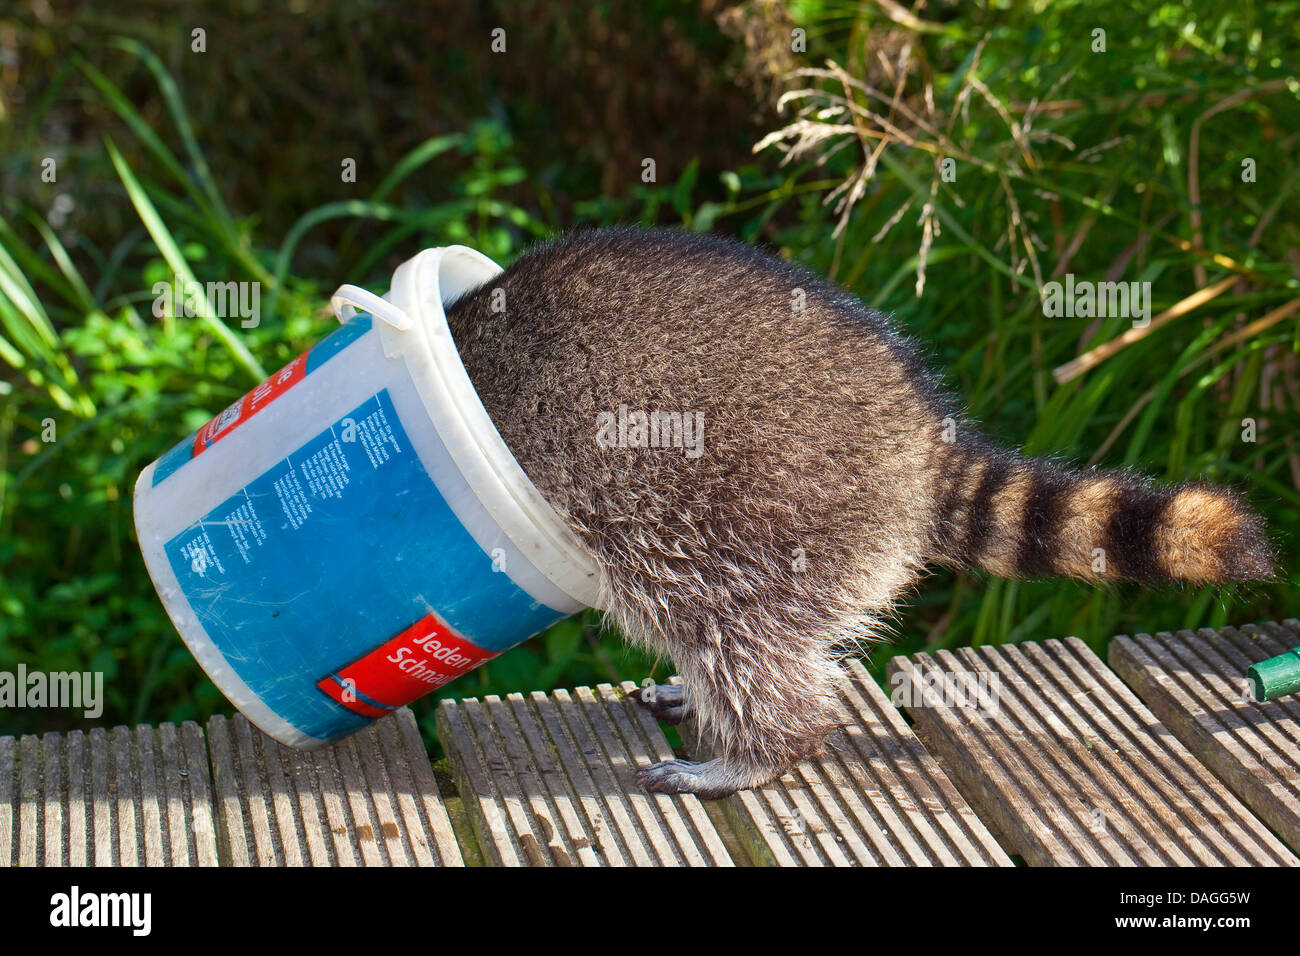 common raccoon (Procyon lotor), tame pup playing with a bucket in the garden, Germany - Stock Image